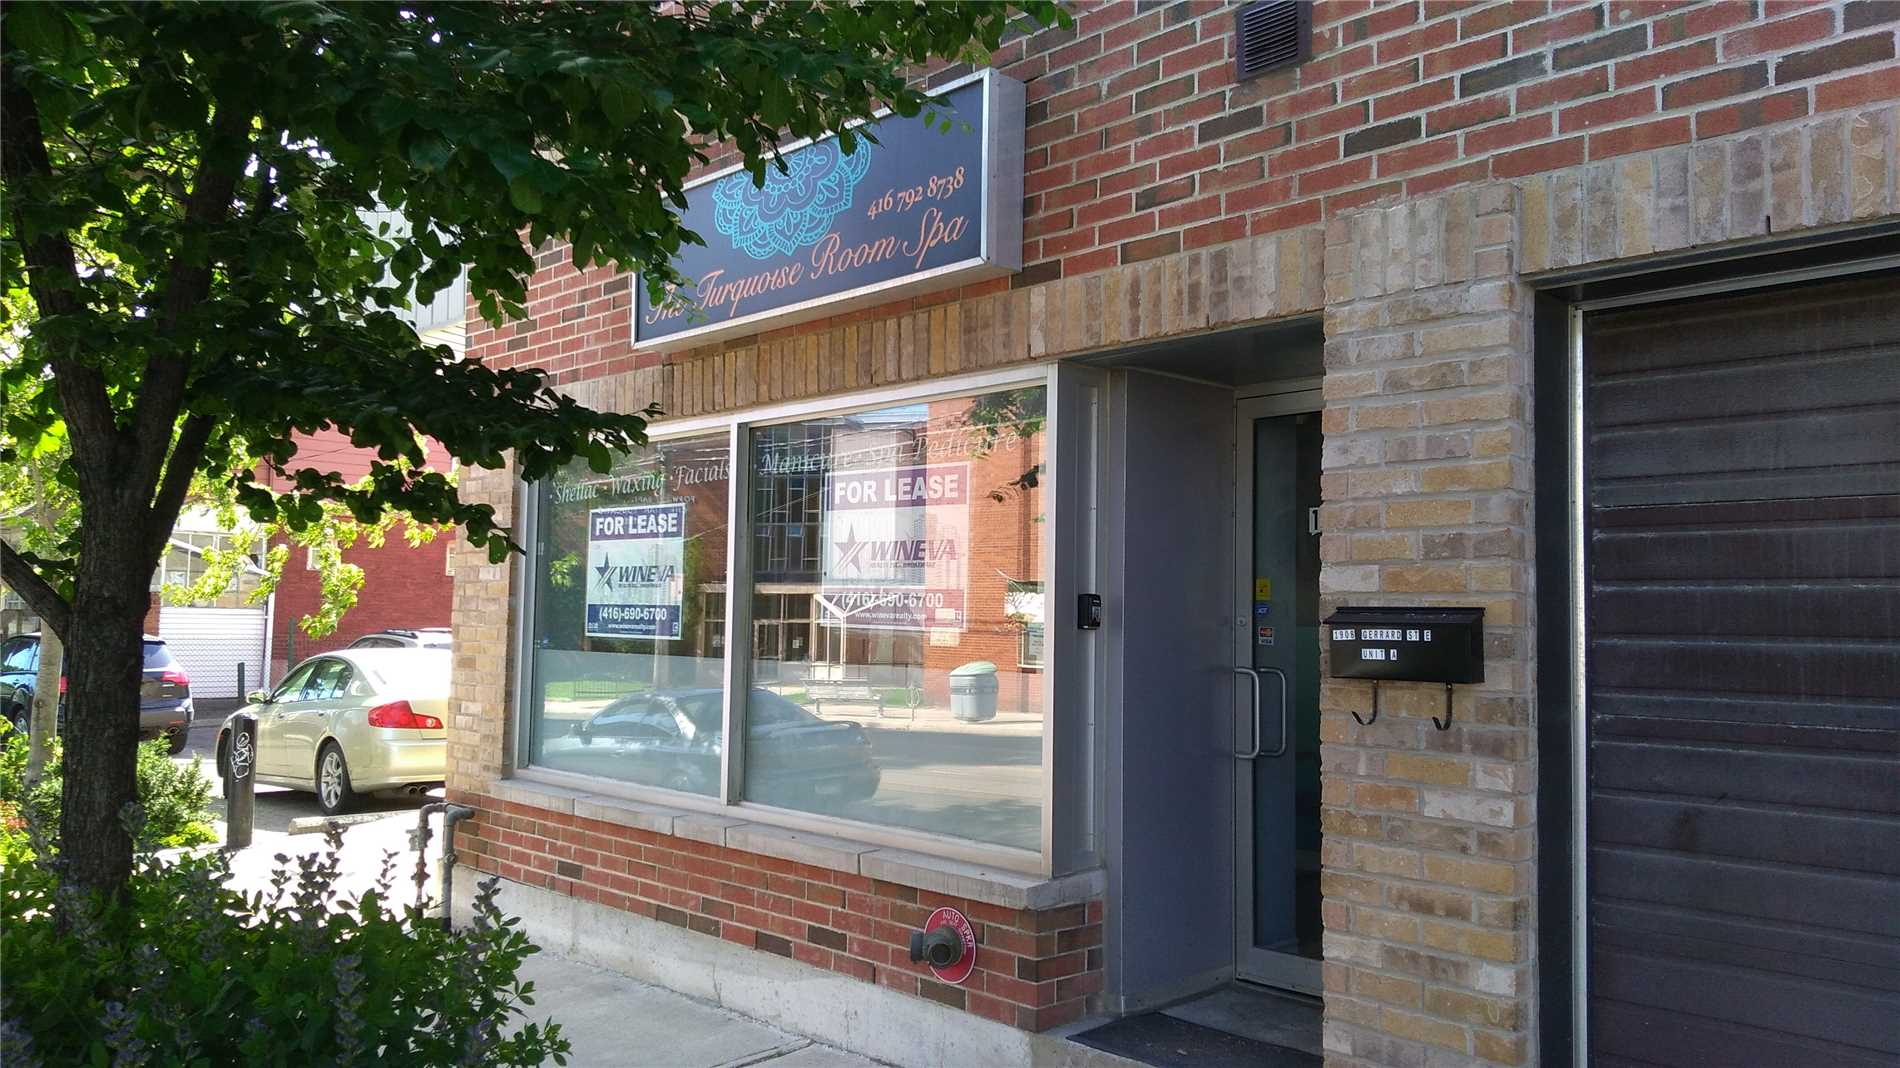 Prime Upper Beach Nail Salon / Spa For Lease At Busy Woodbine/Gerrard Intersection. Turn Key Operation. Includes All Existing Chattels And Fixtures. Lots Of Walk-By And Drive-By Traffic. Perfect For Any Business. Brand New Building From A To Z.